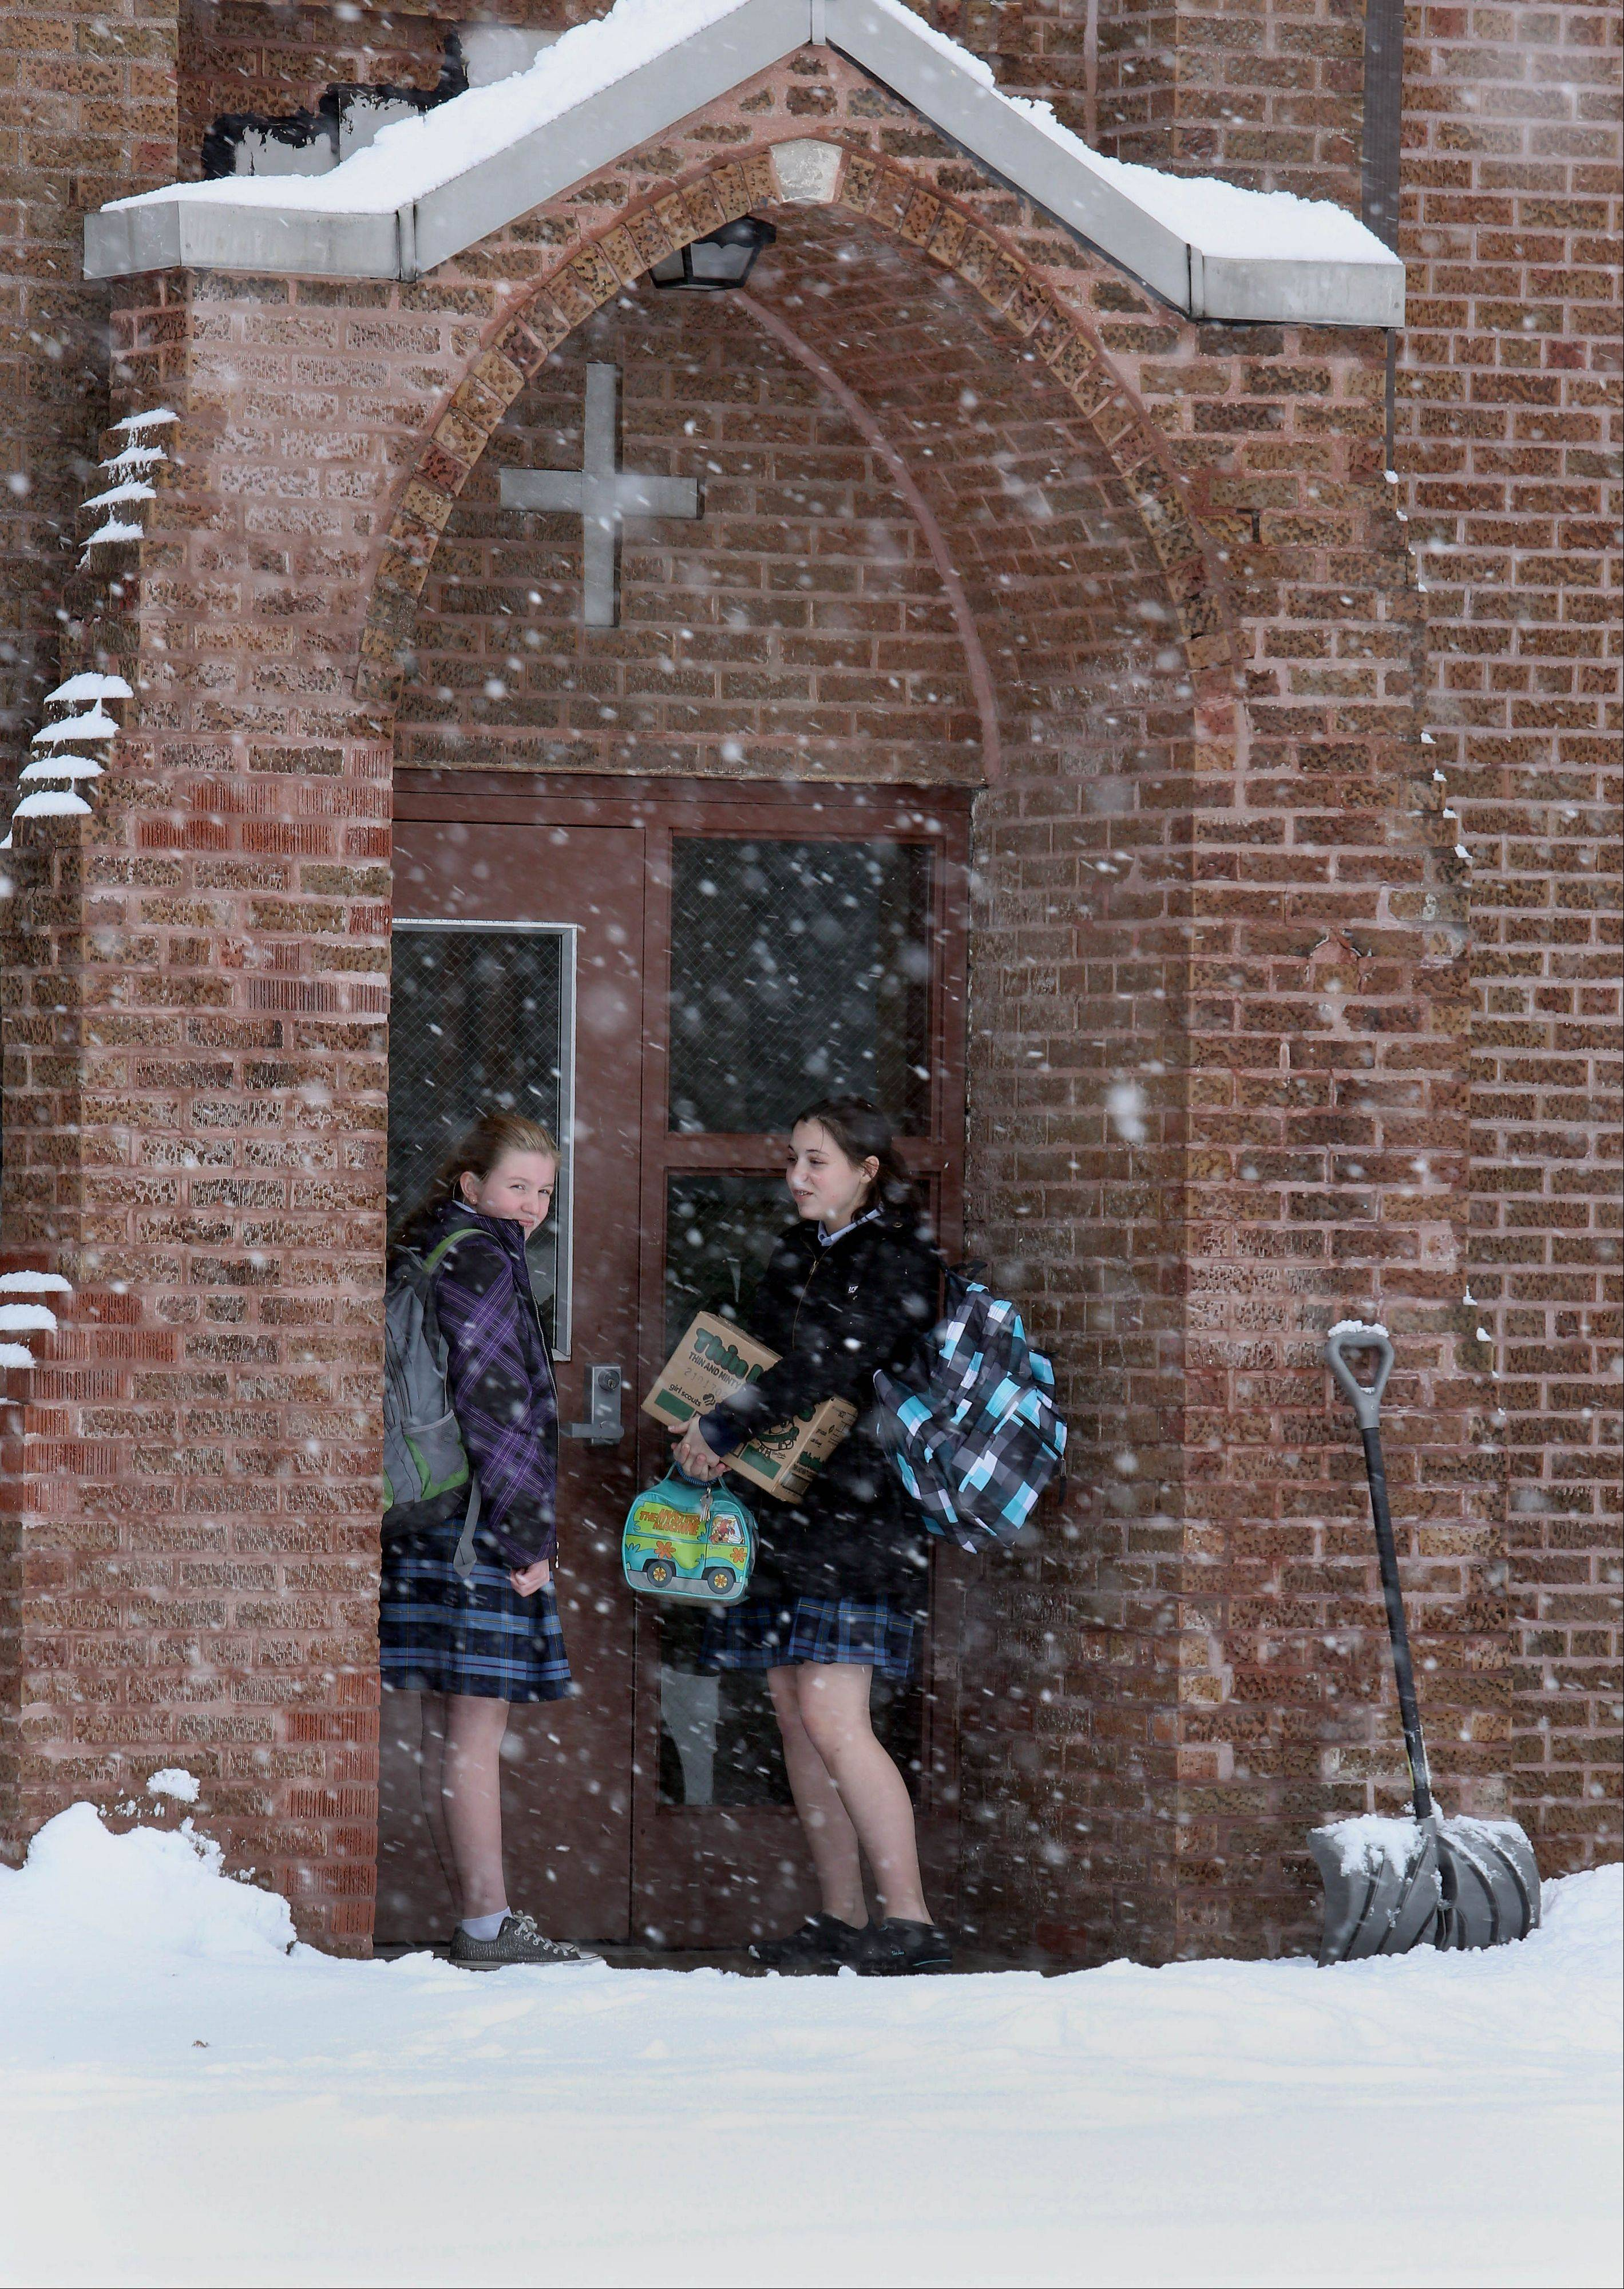 Arielle Duerr, 14, left and Rachael Isdale, 14, right, take shelter in a doorway from the falling snow while waiting for a ride after getting out of St. Irene Catholic School on Tuesday in Warrenville.